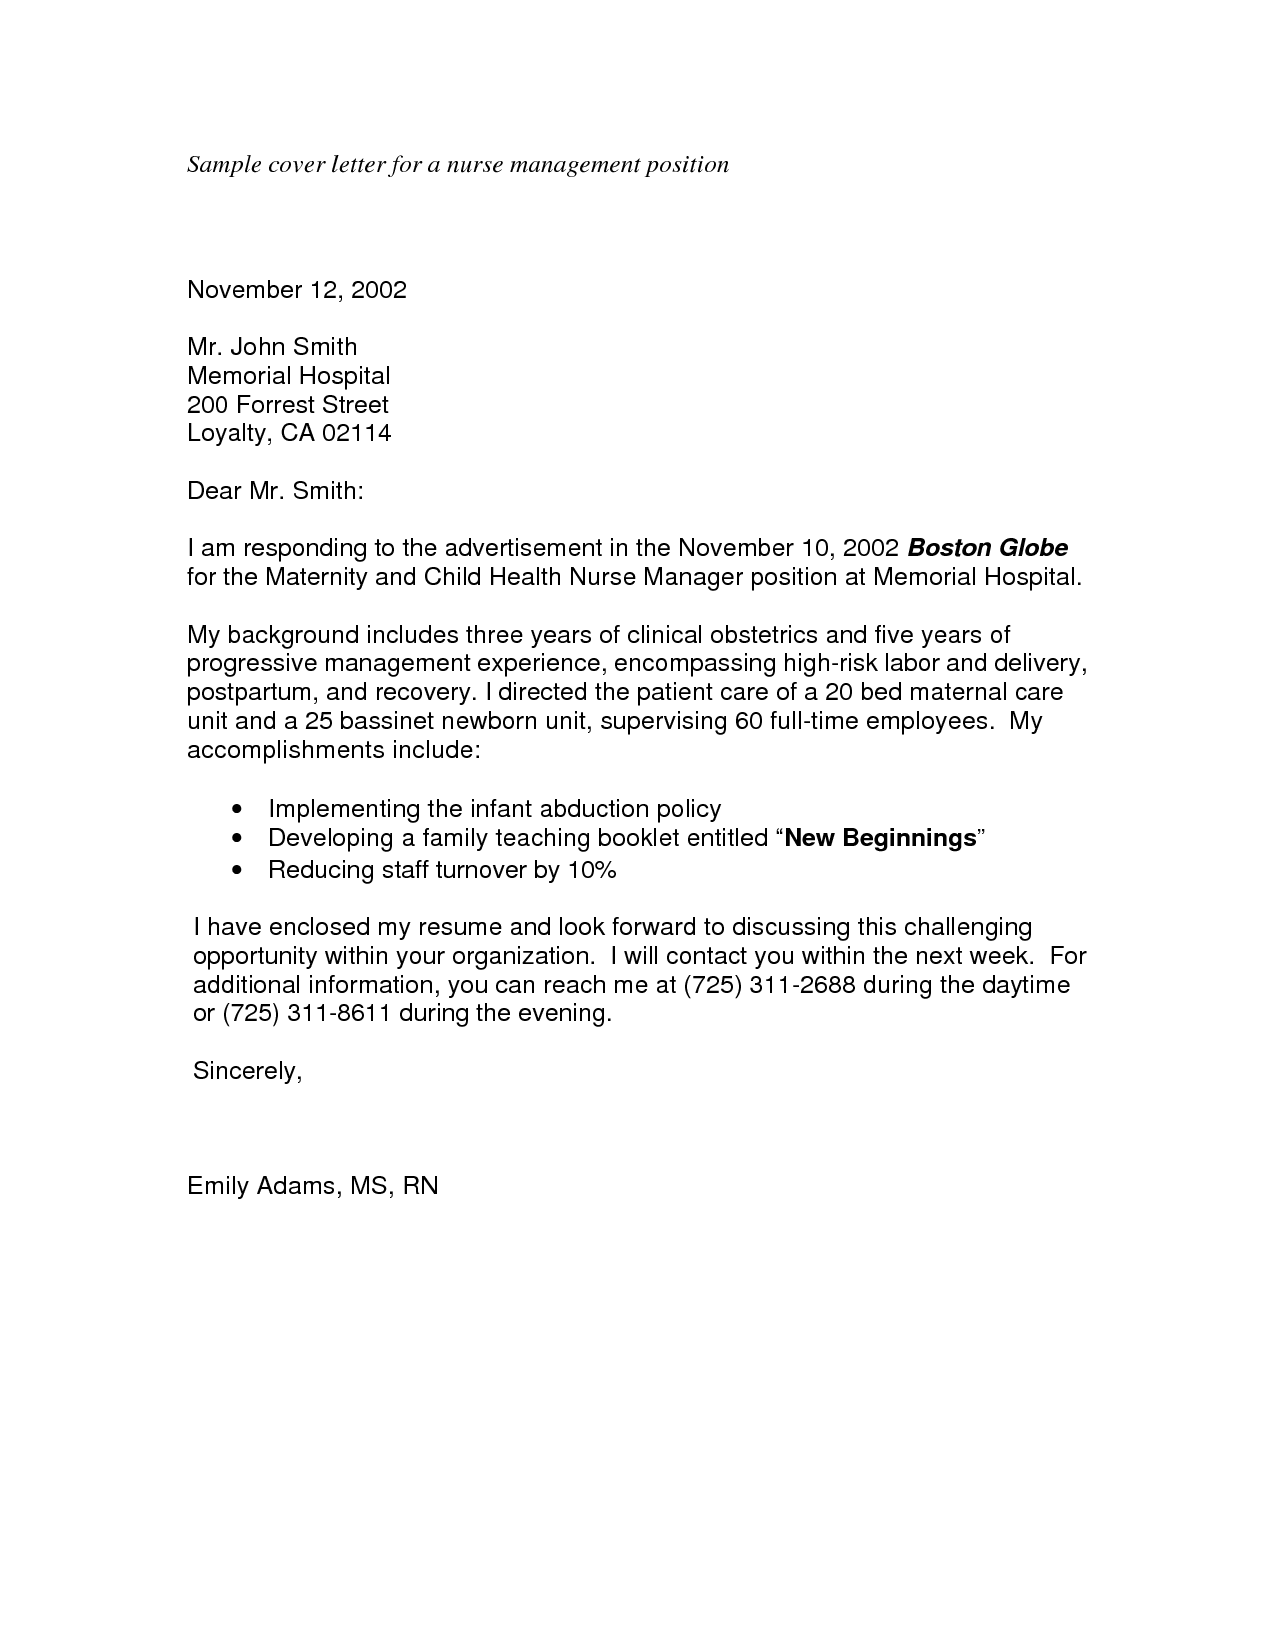 writing a cover letter for a management position - sample cover letter for applying a job